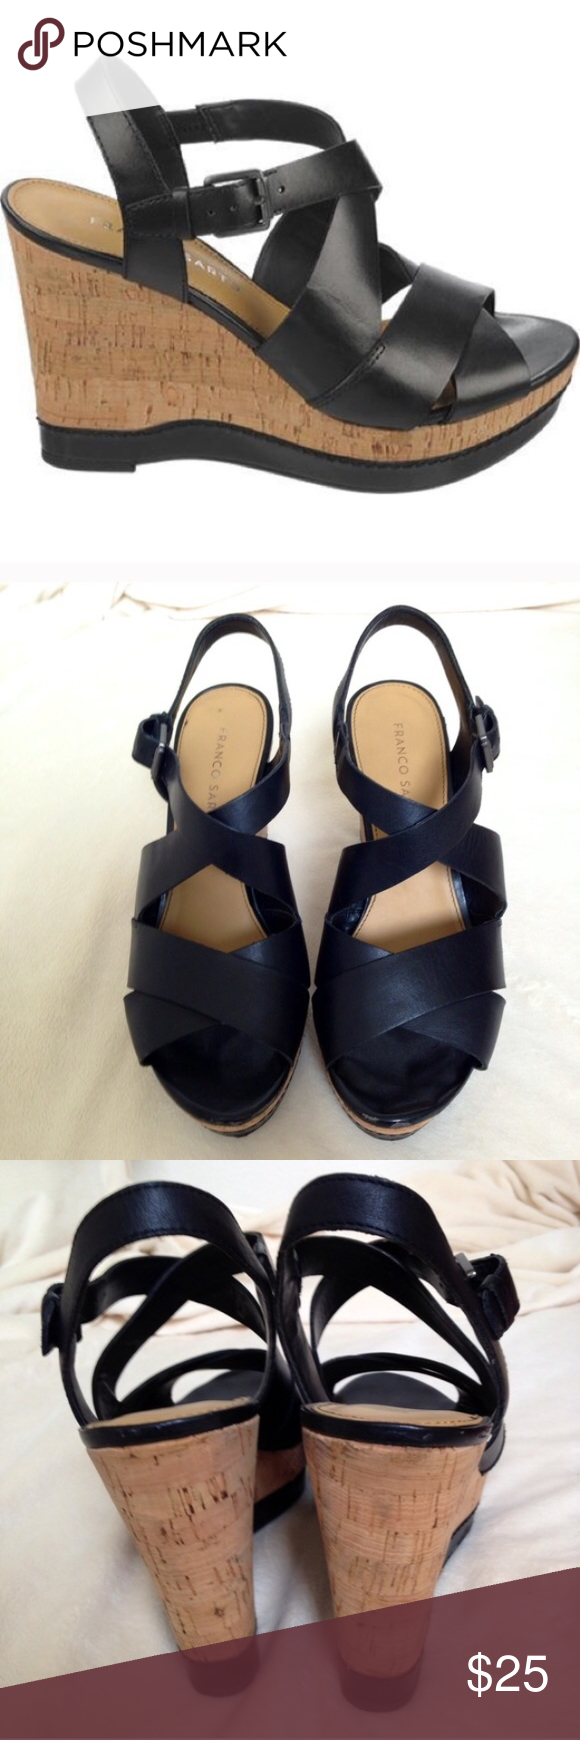 Black sandals at dsw - Franco Sarto Black Wedge Sandals 8 5 Purchased From Dsw Like New Condition Wedge At 4